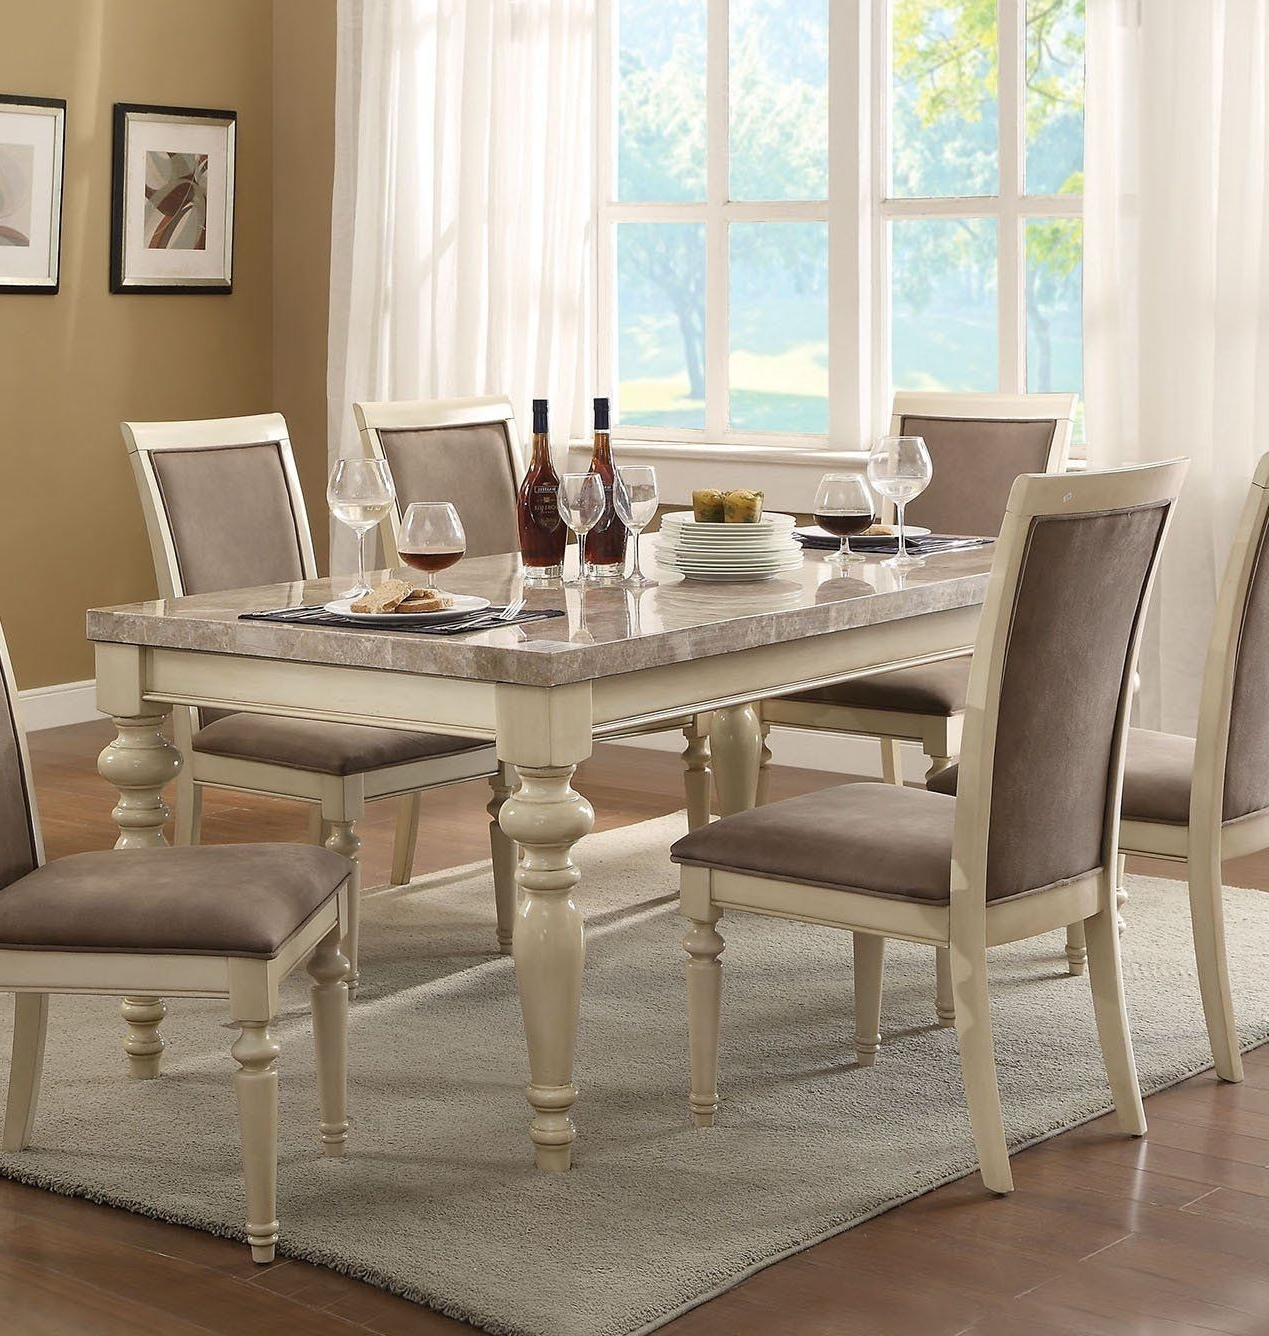 Acme 71705 Ryder Antique White Marble Top Dining Table (View 4 of 25)